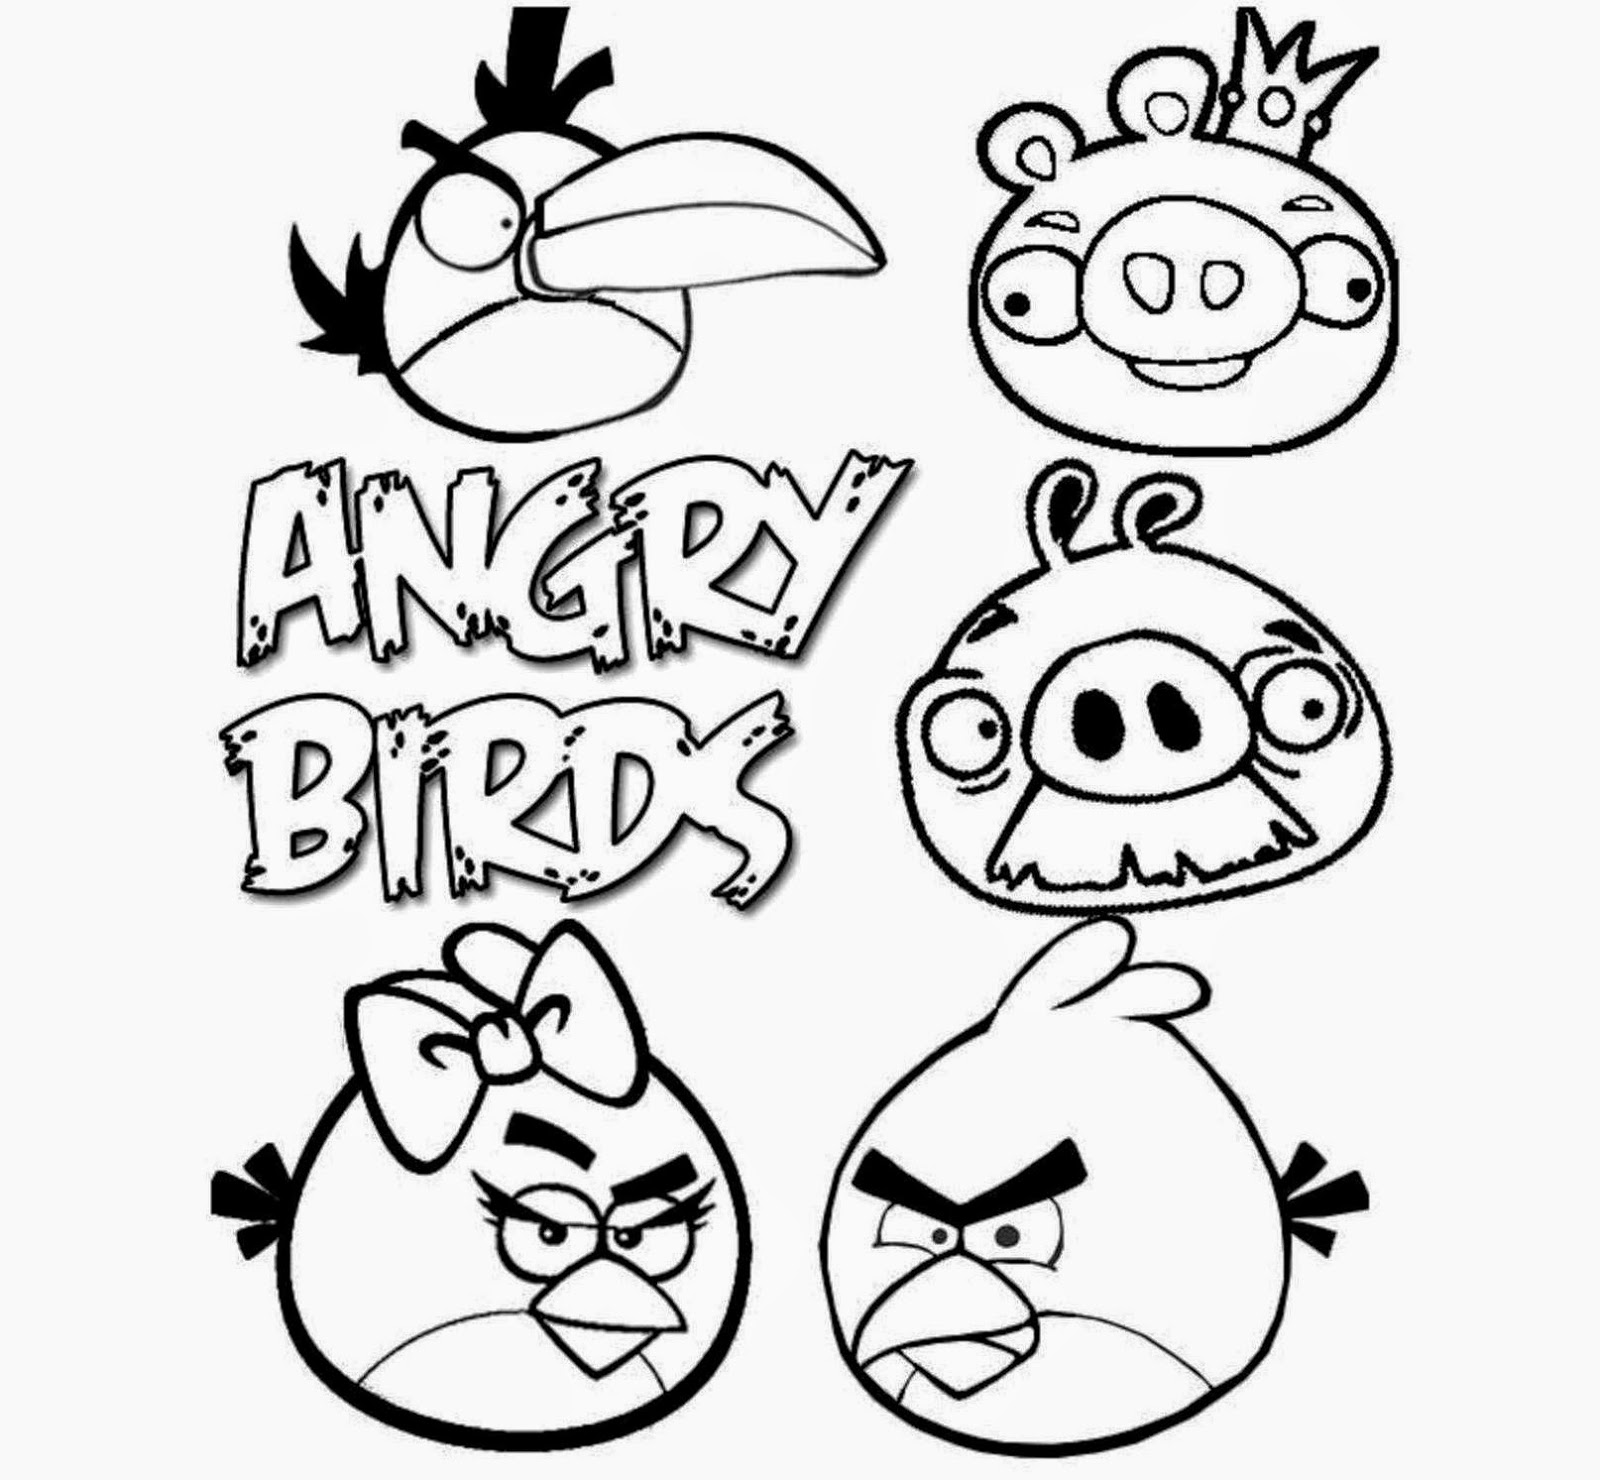 1600x1480 Colour Drawing Free Wallpaper Angry Birds Coloring Drawing Free